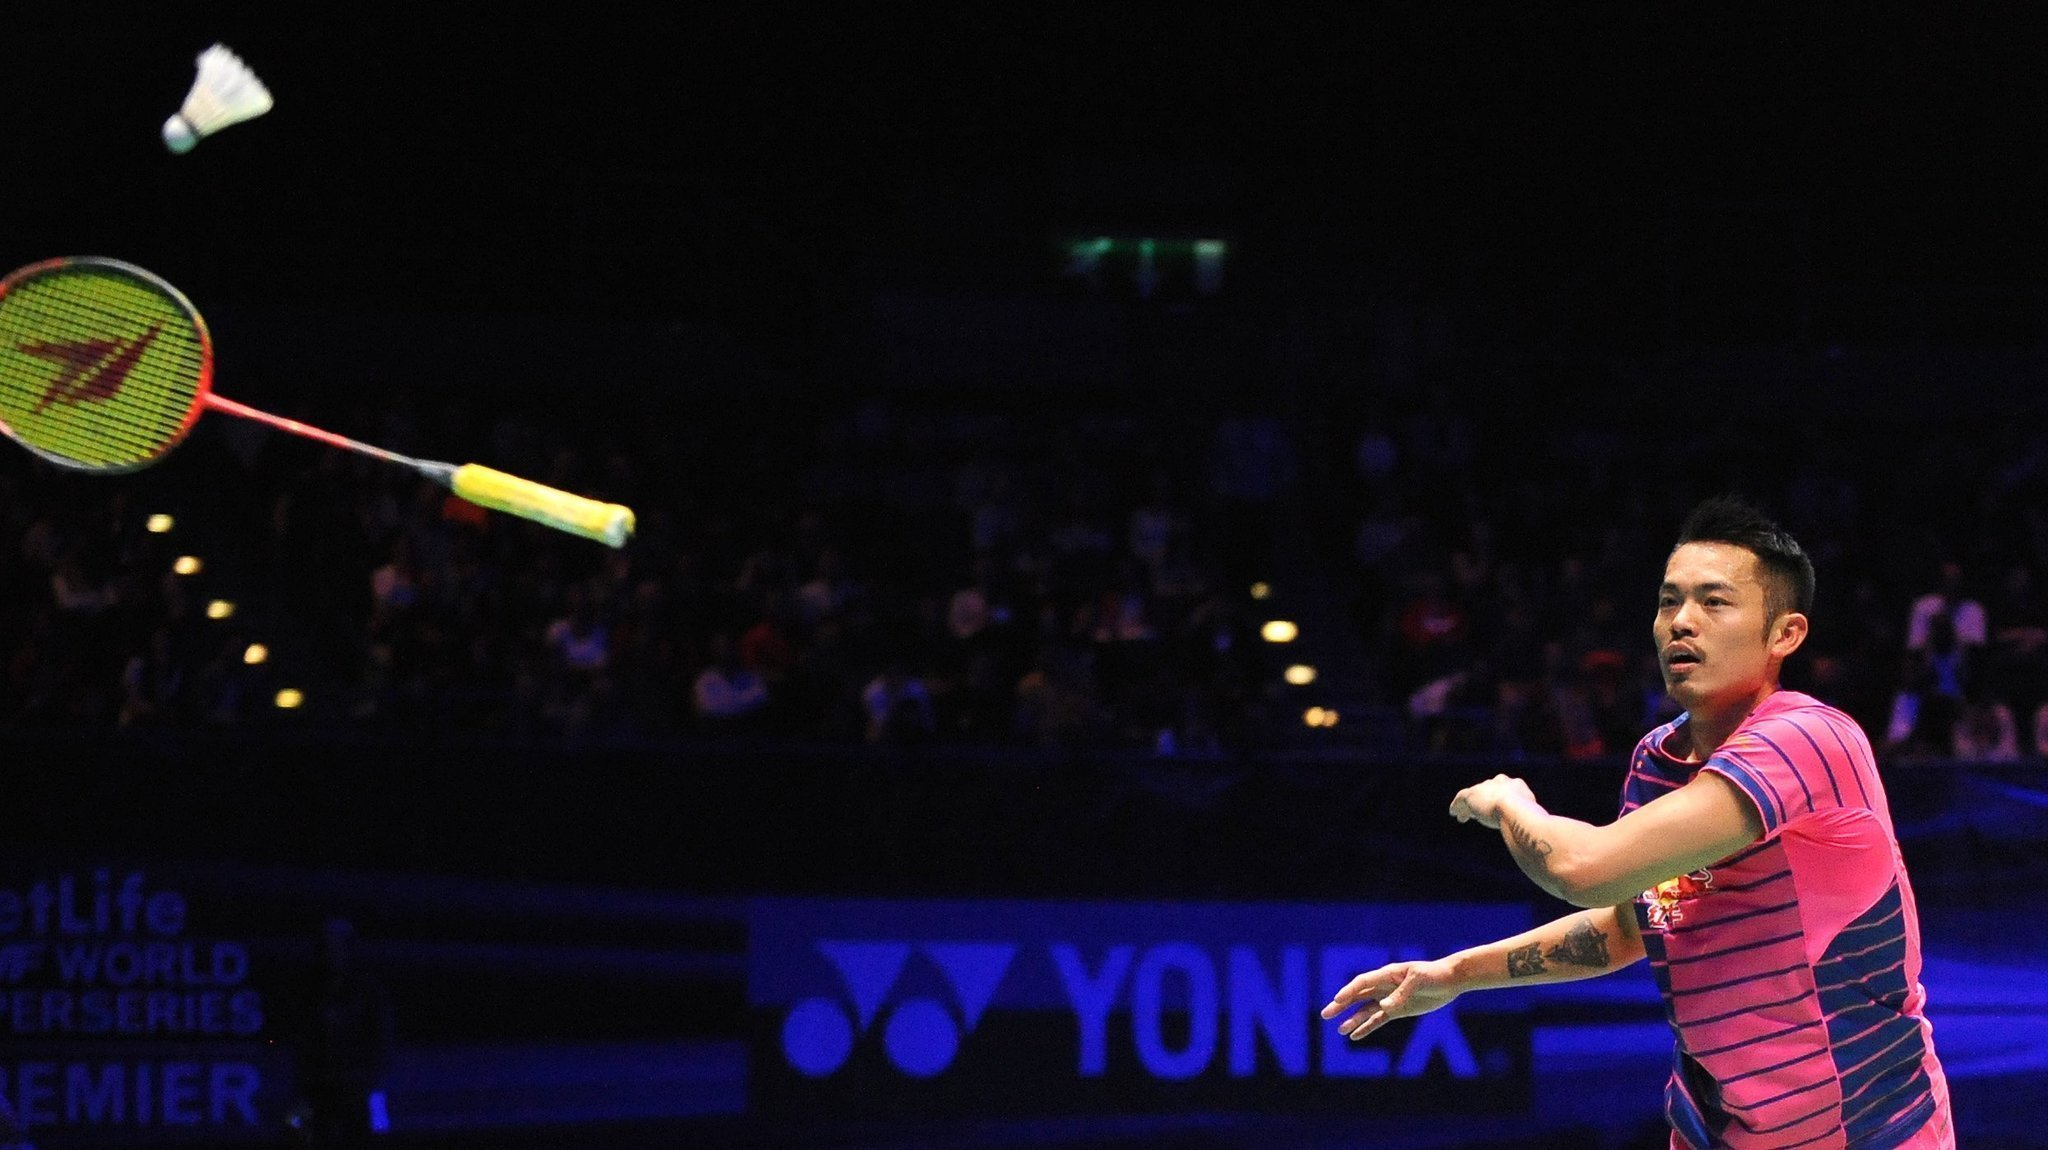 Lin Dan wins his 6th All England title Okuhara her 1st The San